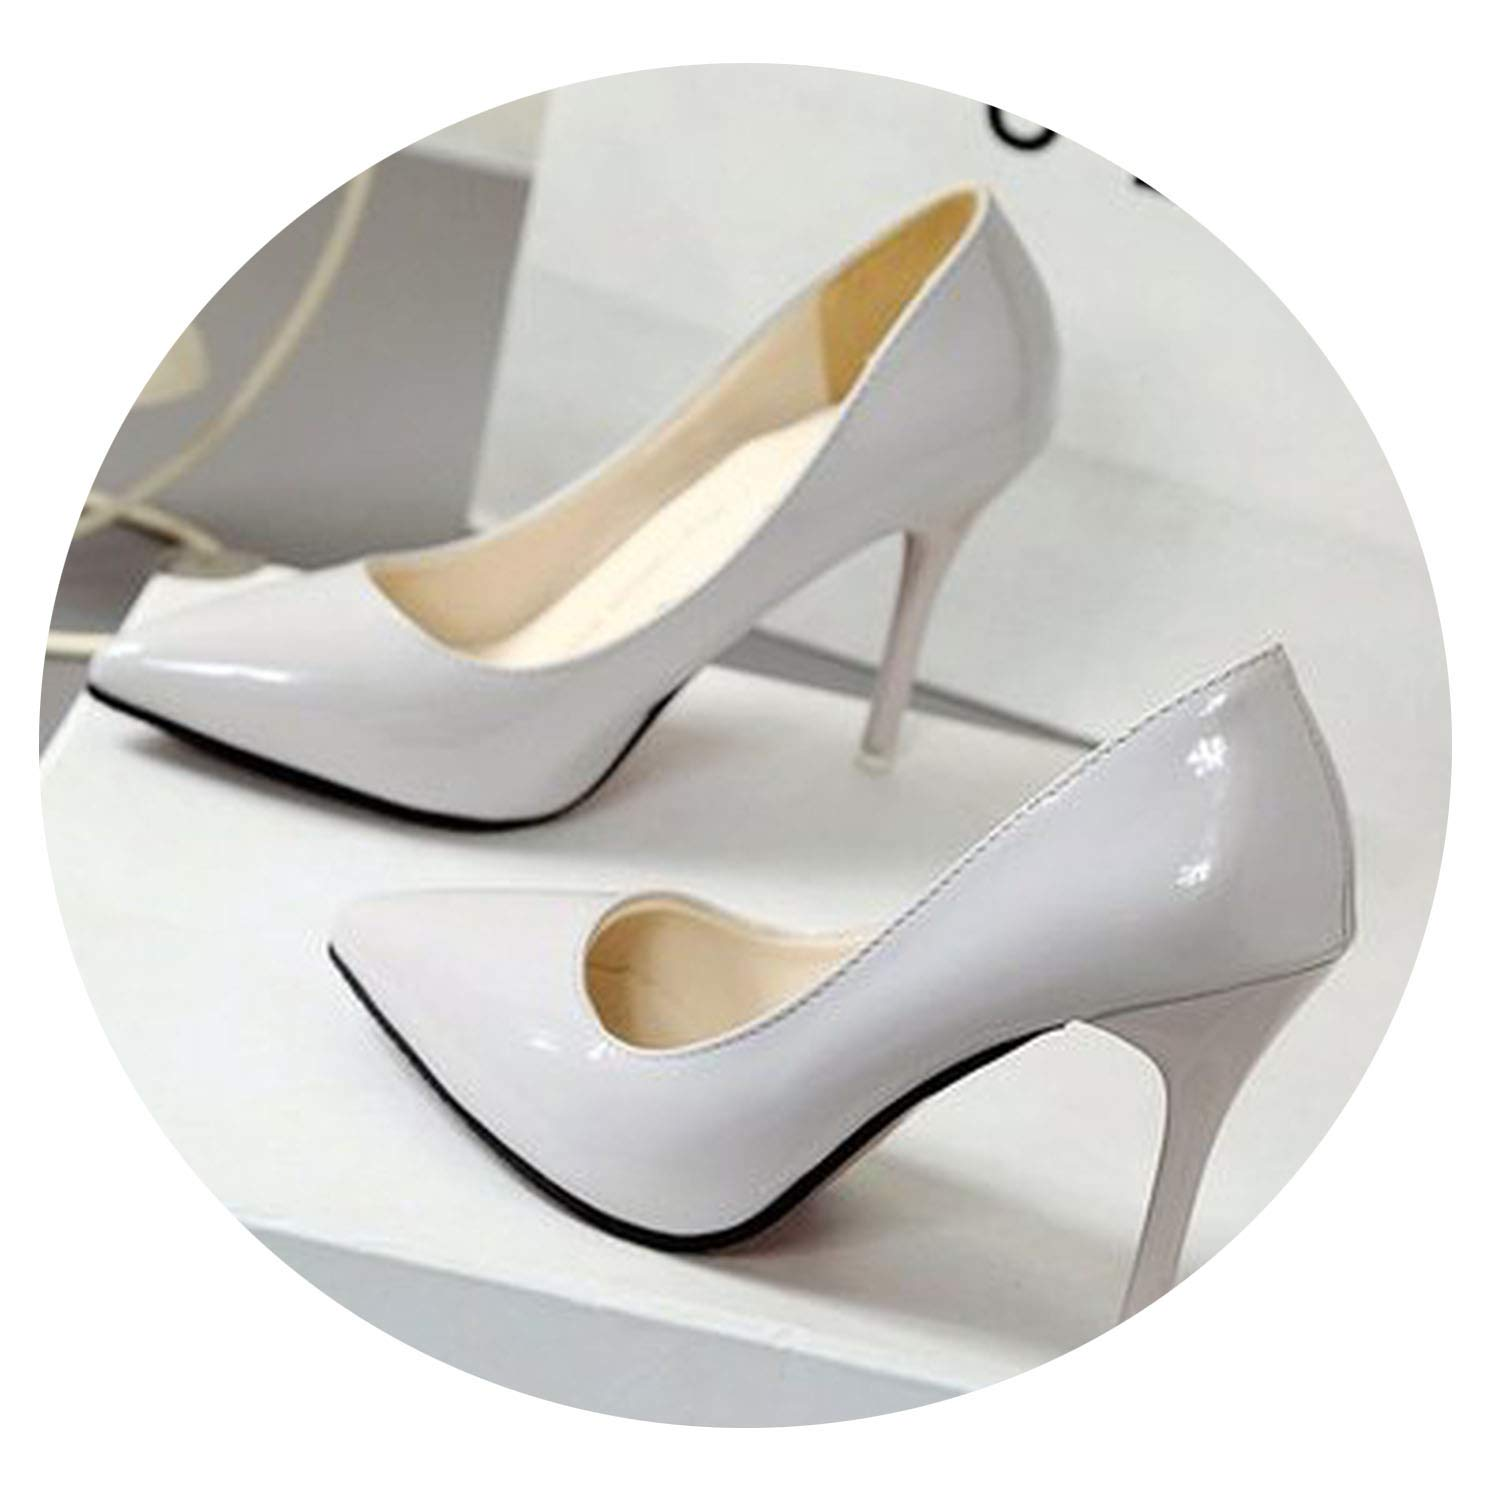 2019 HOT Women Shoes Pointed Toe Pumps Patent Leather Dress High Heels Boat Shoes Wedding Shoes